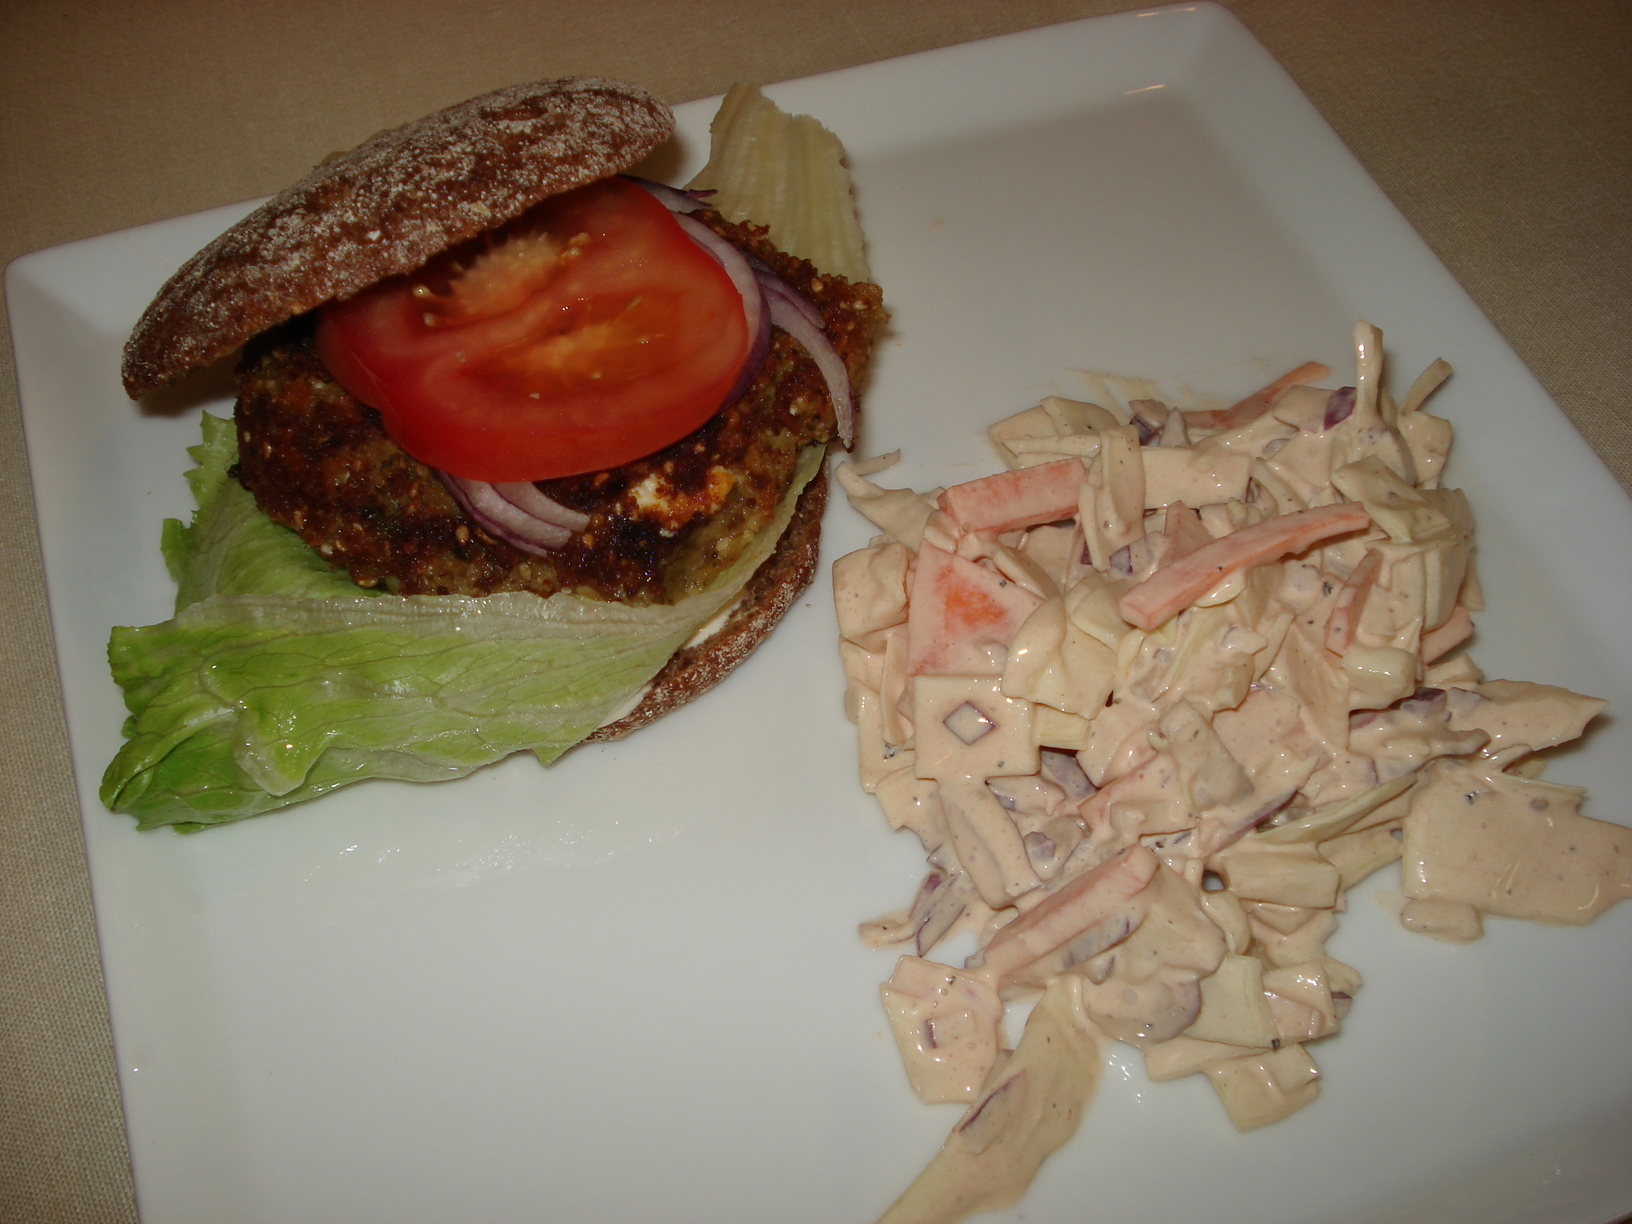 Lentil burgers with feta cheese and sun-dried tomatoes and coleslaw